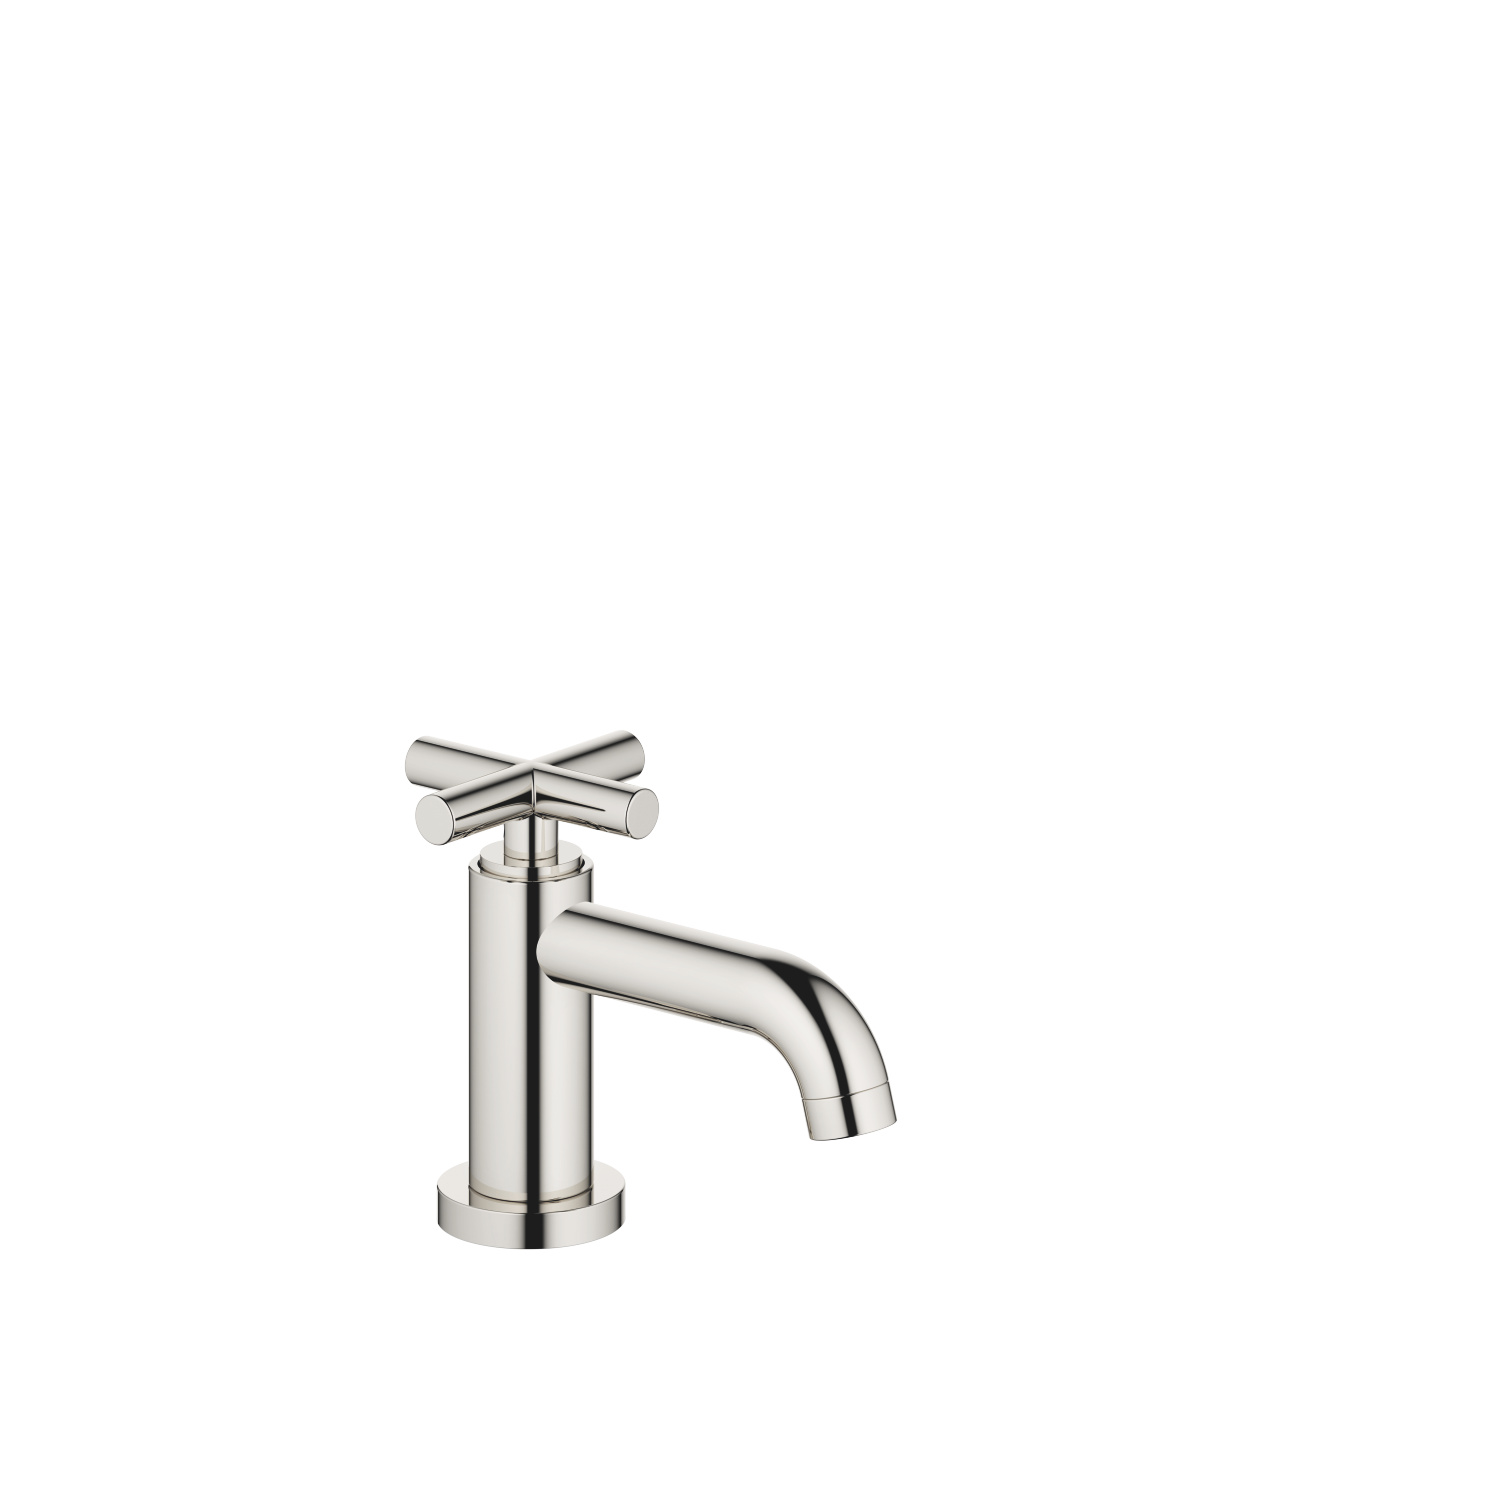 Pillar tap cold water - platinum - 17 500 892-08